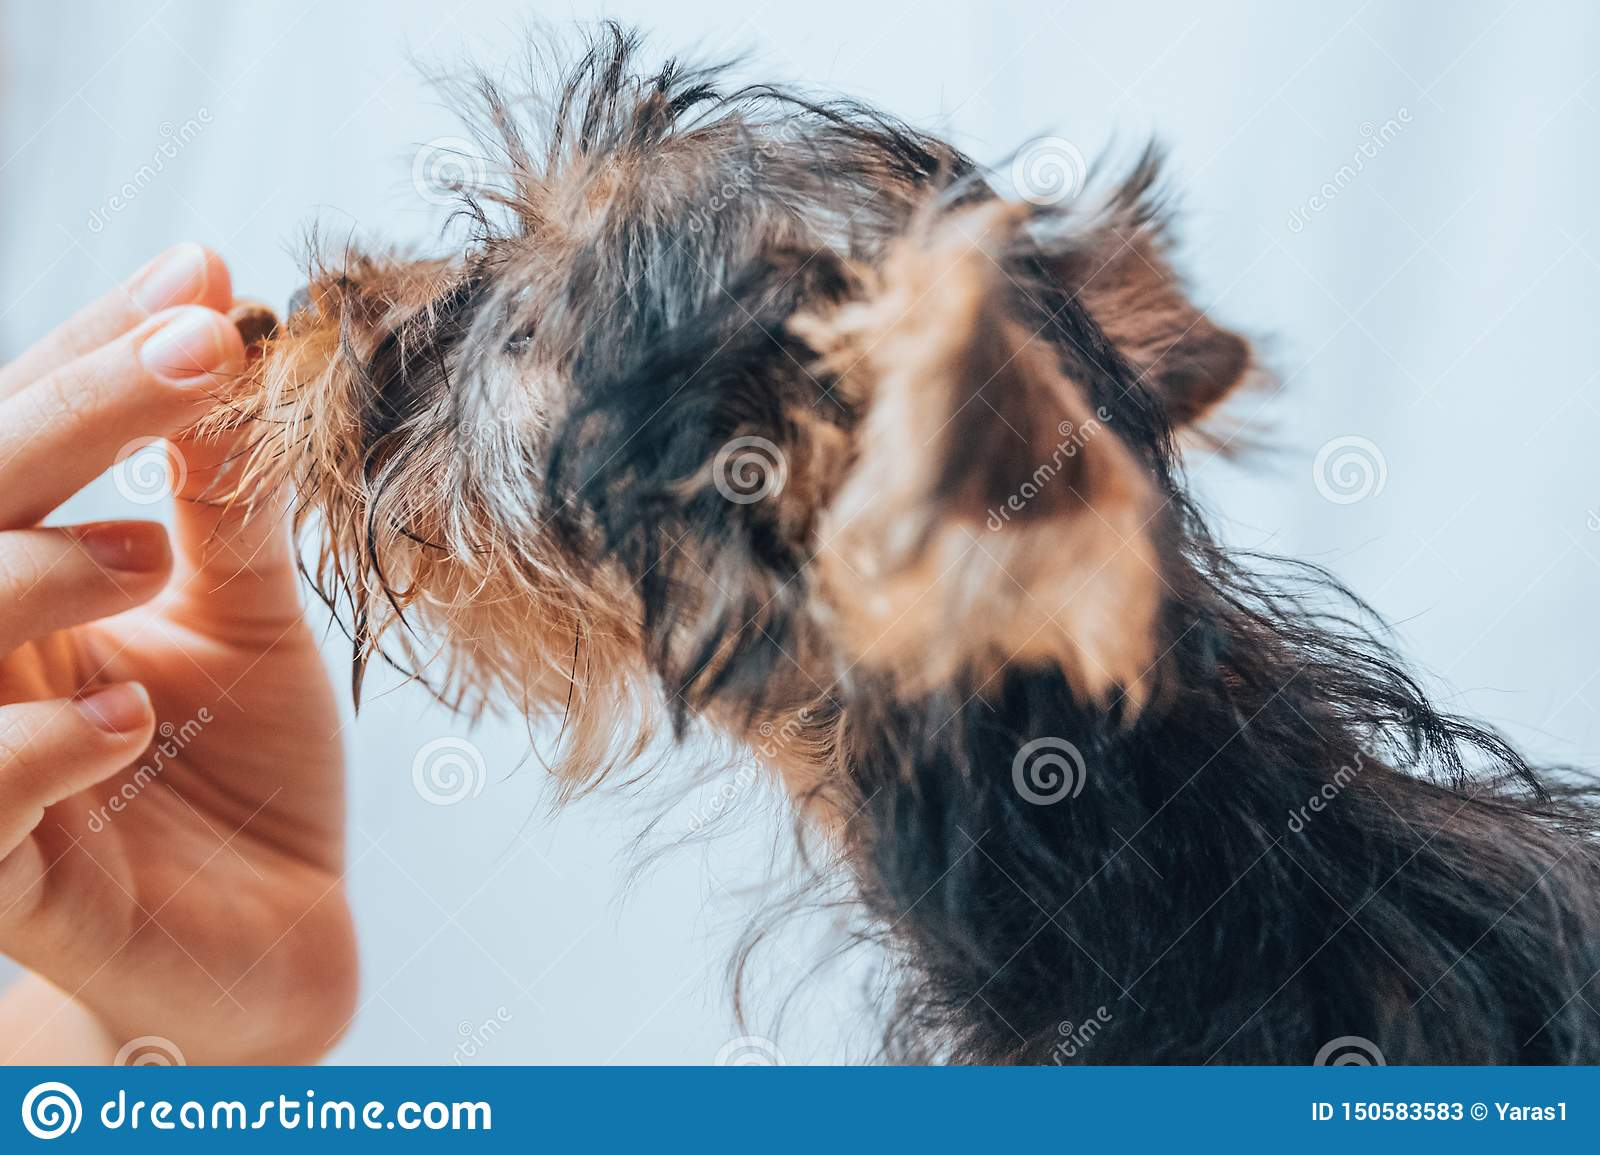 Yorkie Puppy Feeding And Training Stock Image Image Of Feeding Background 150583583